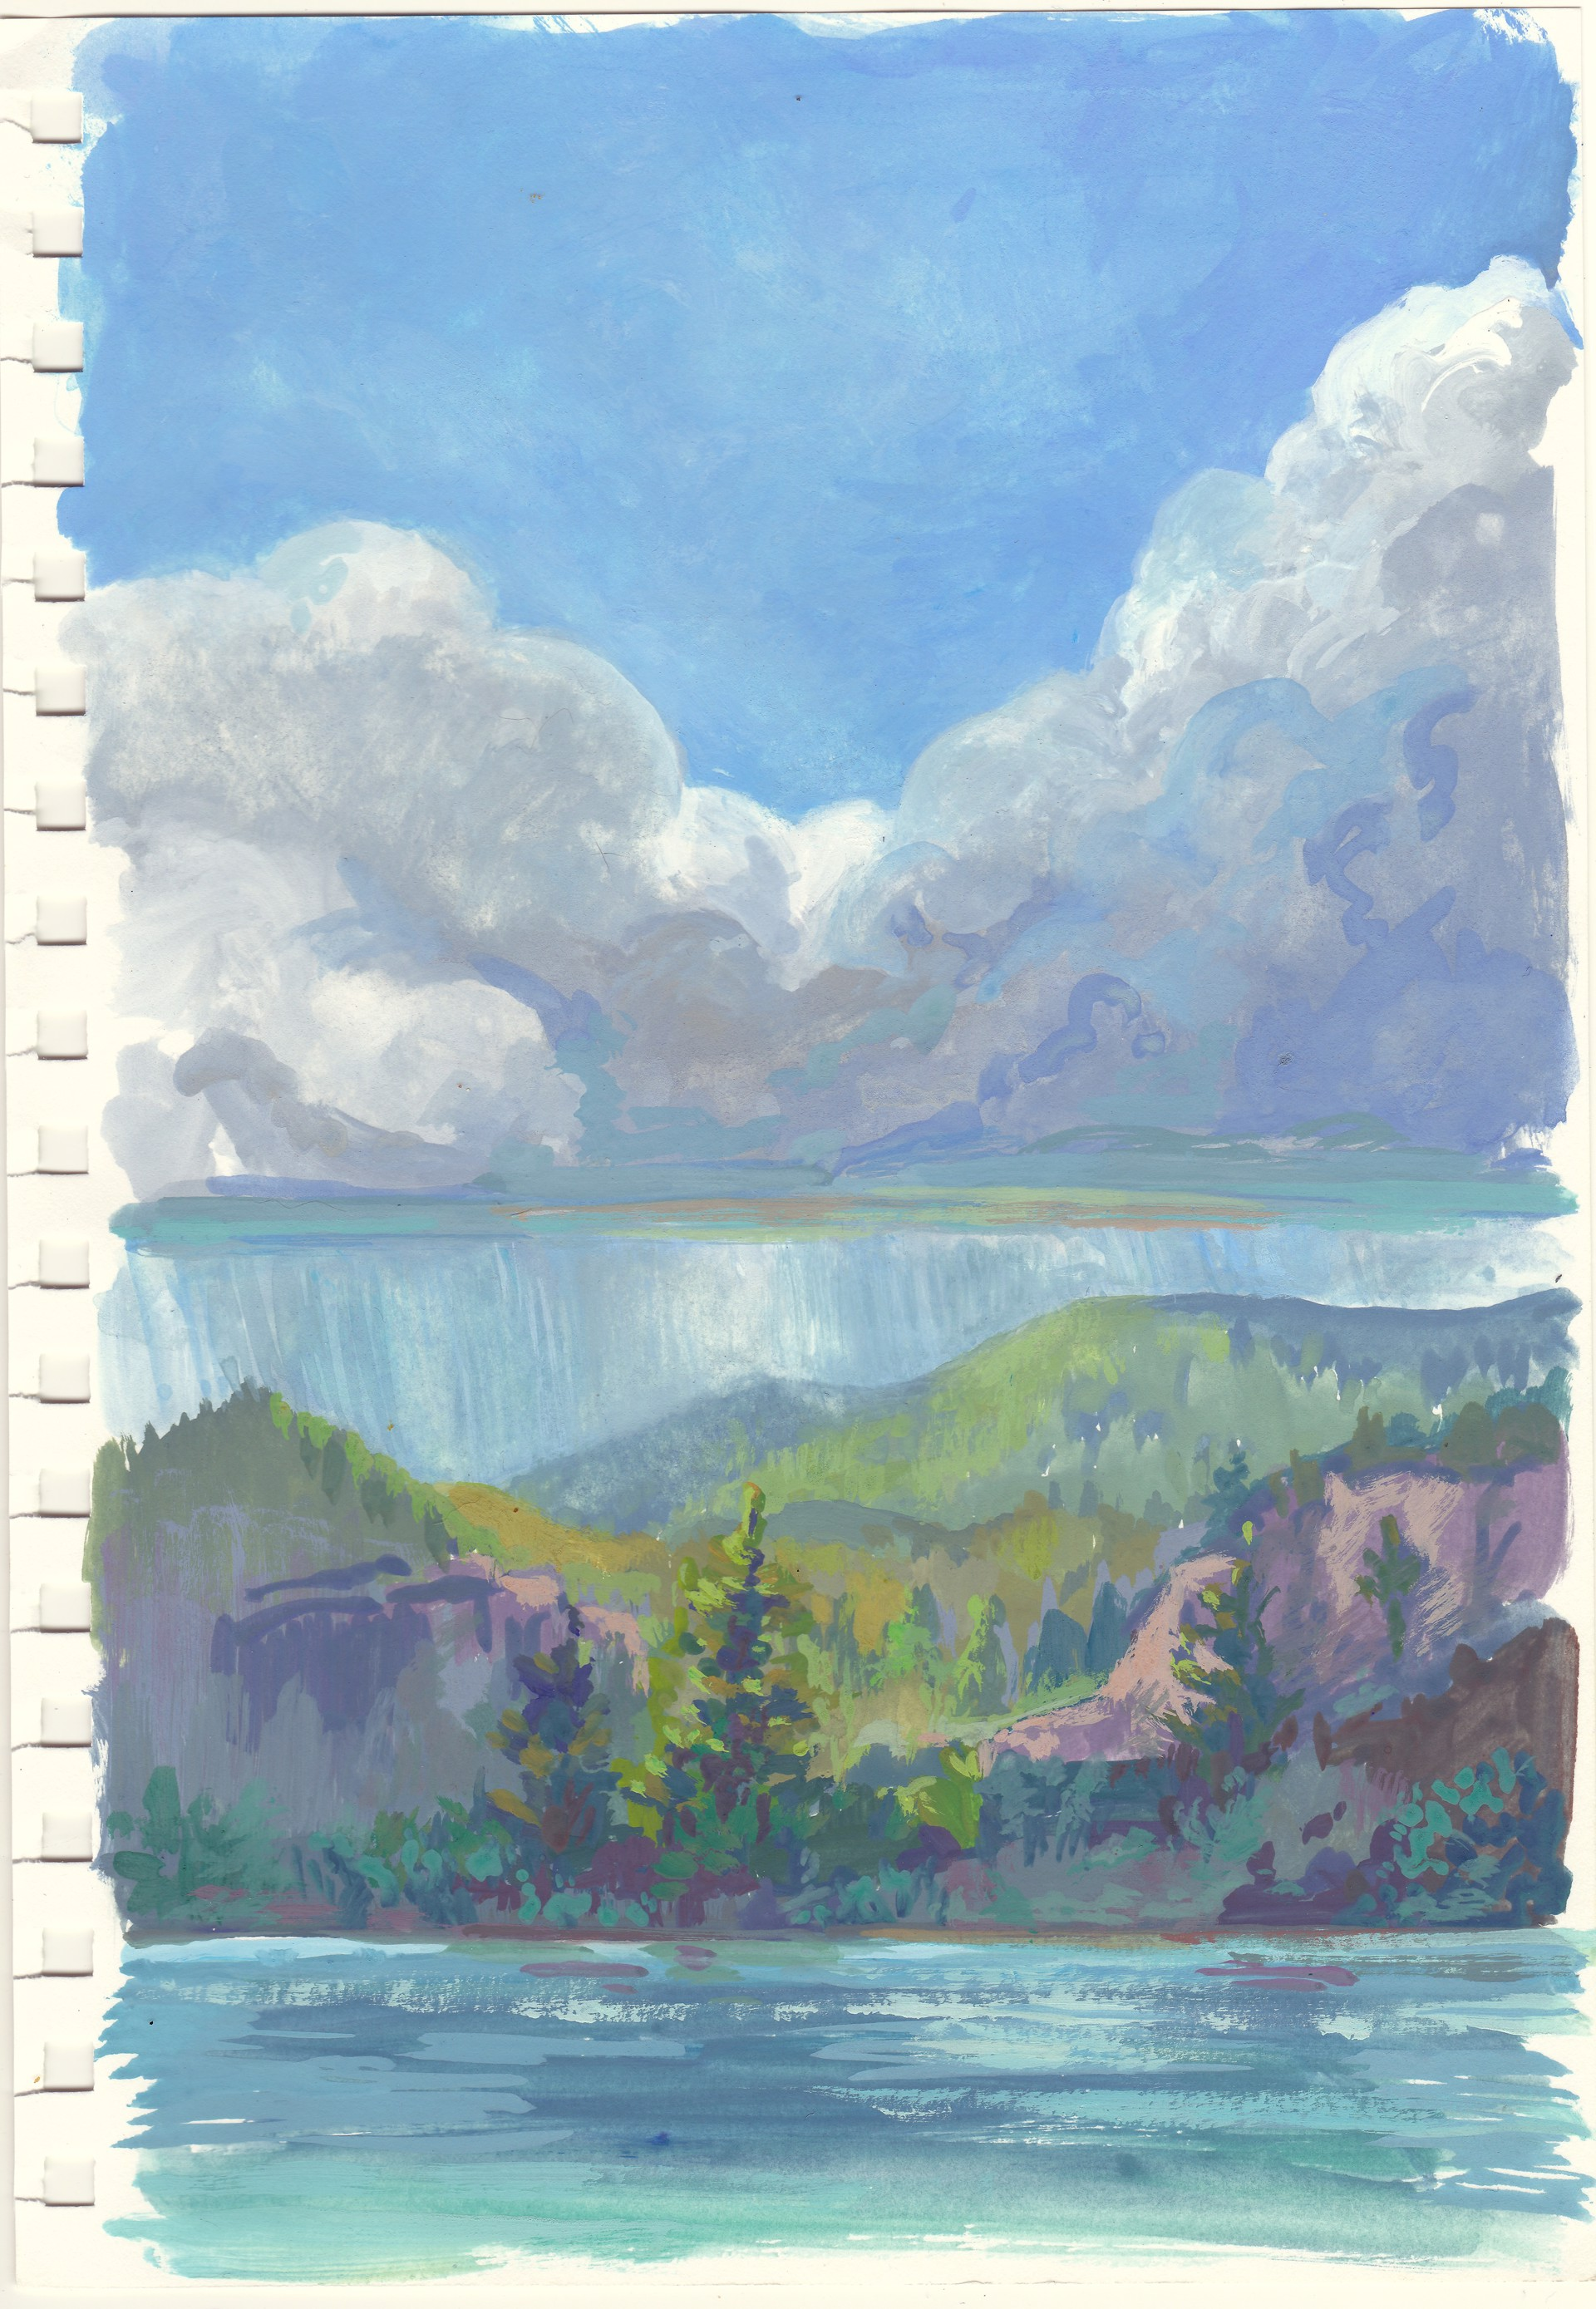 Study: Storm On The Lake by Charis Carmichael Braun